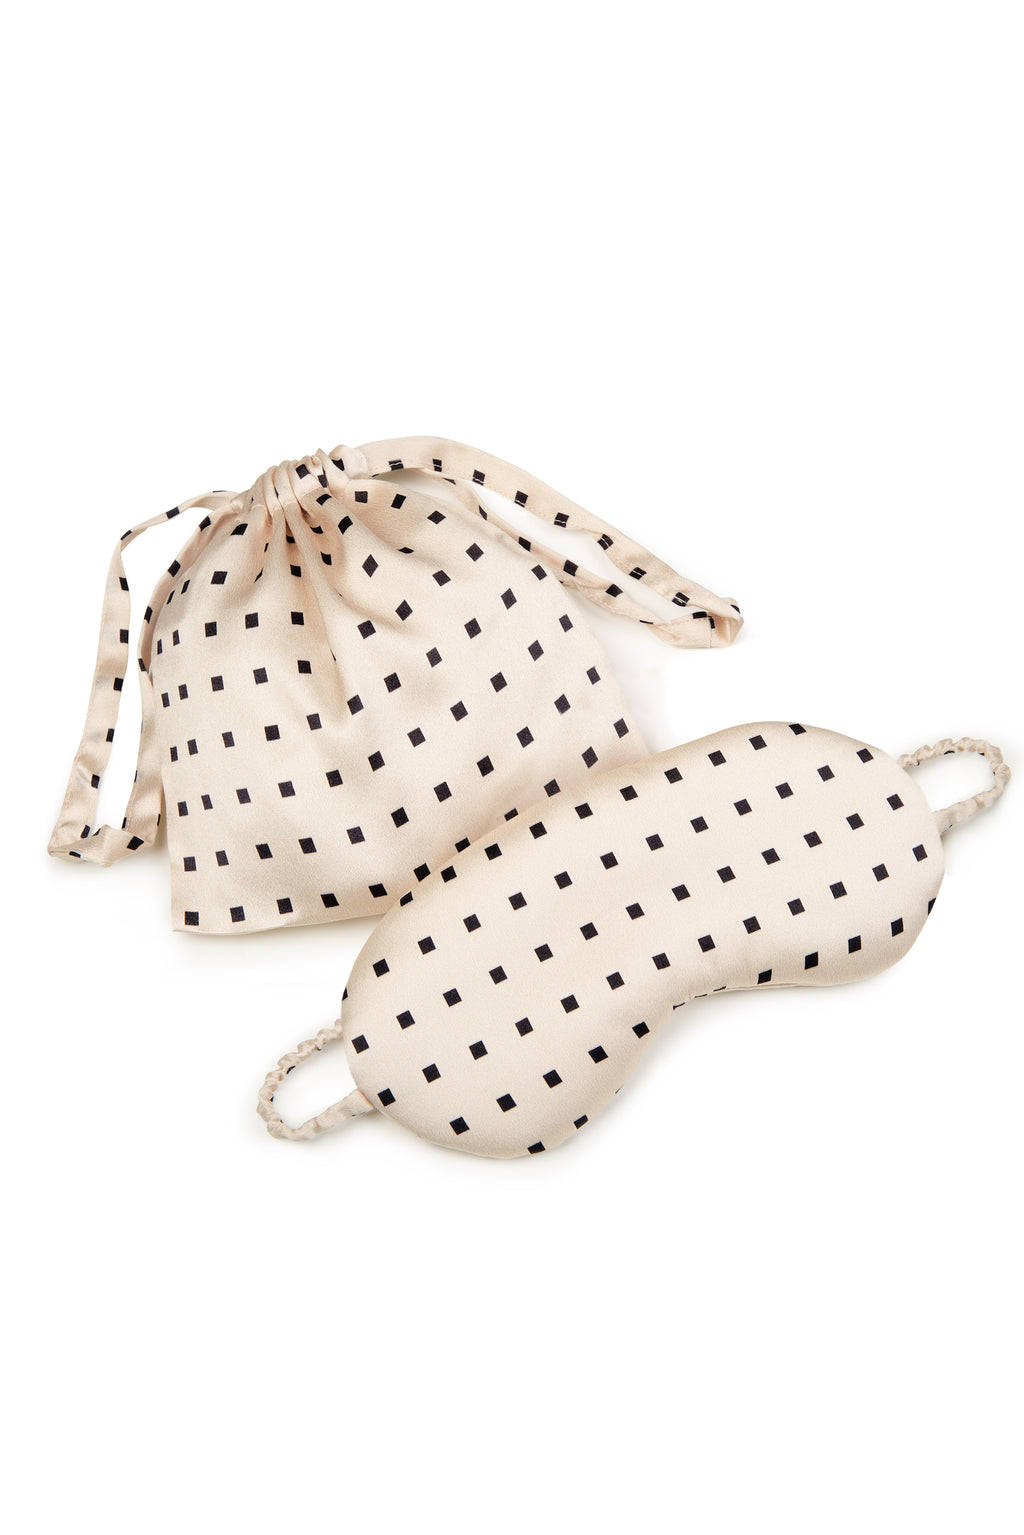 ASCENO LONDON CREAM SQUARE SILK EYE MASK